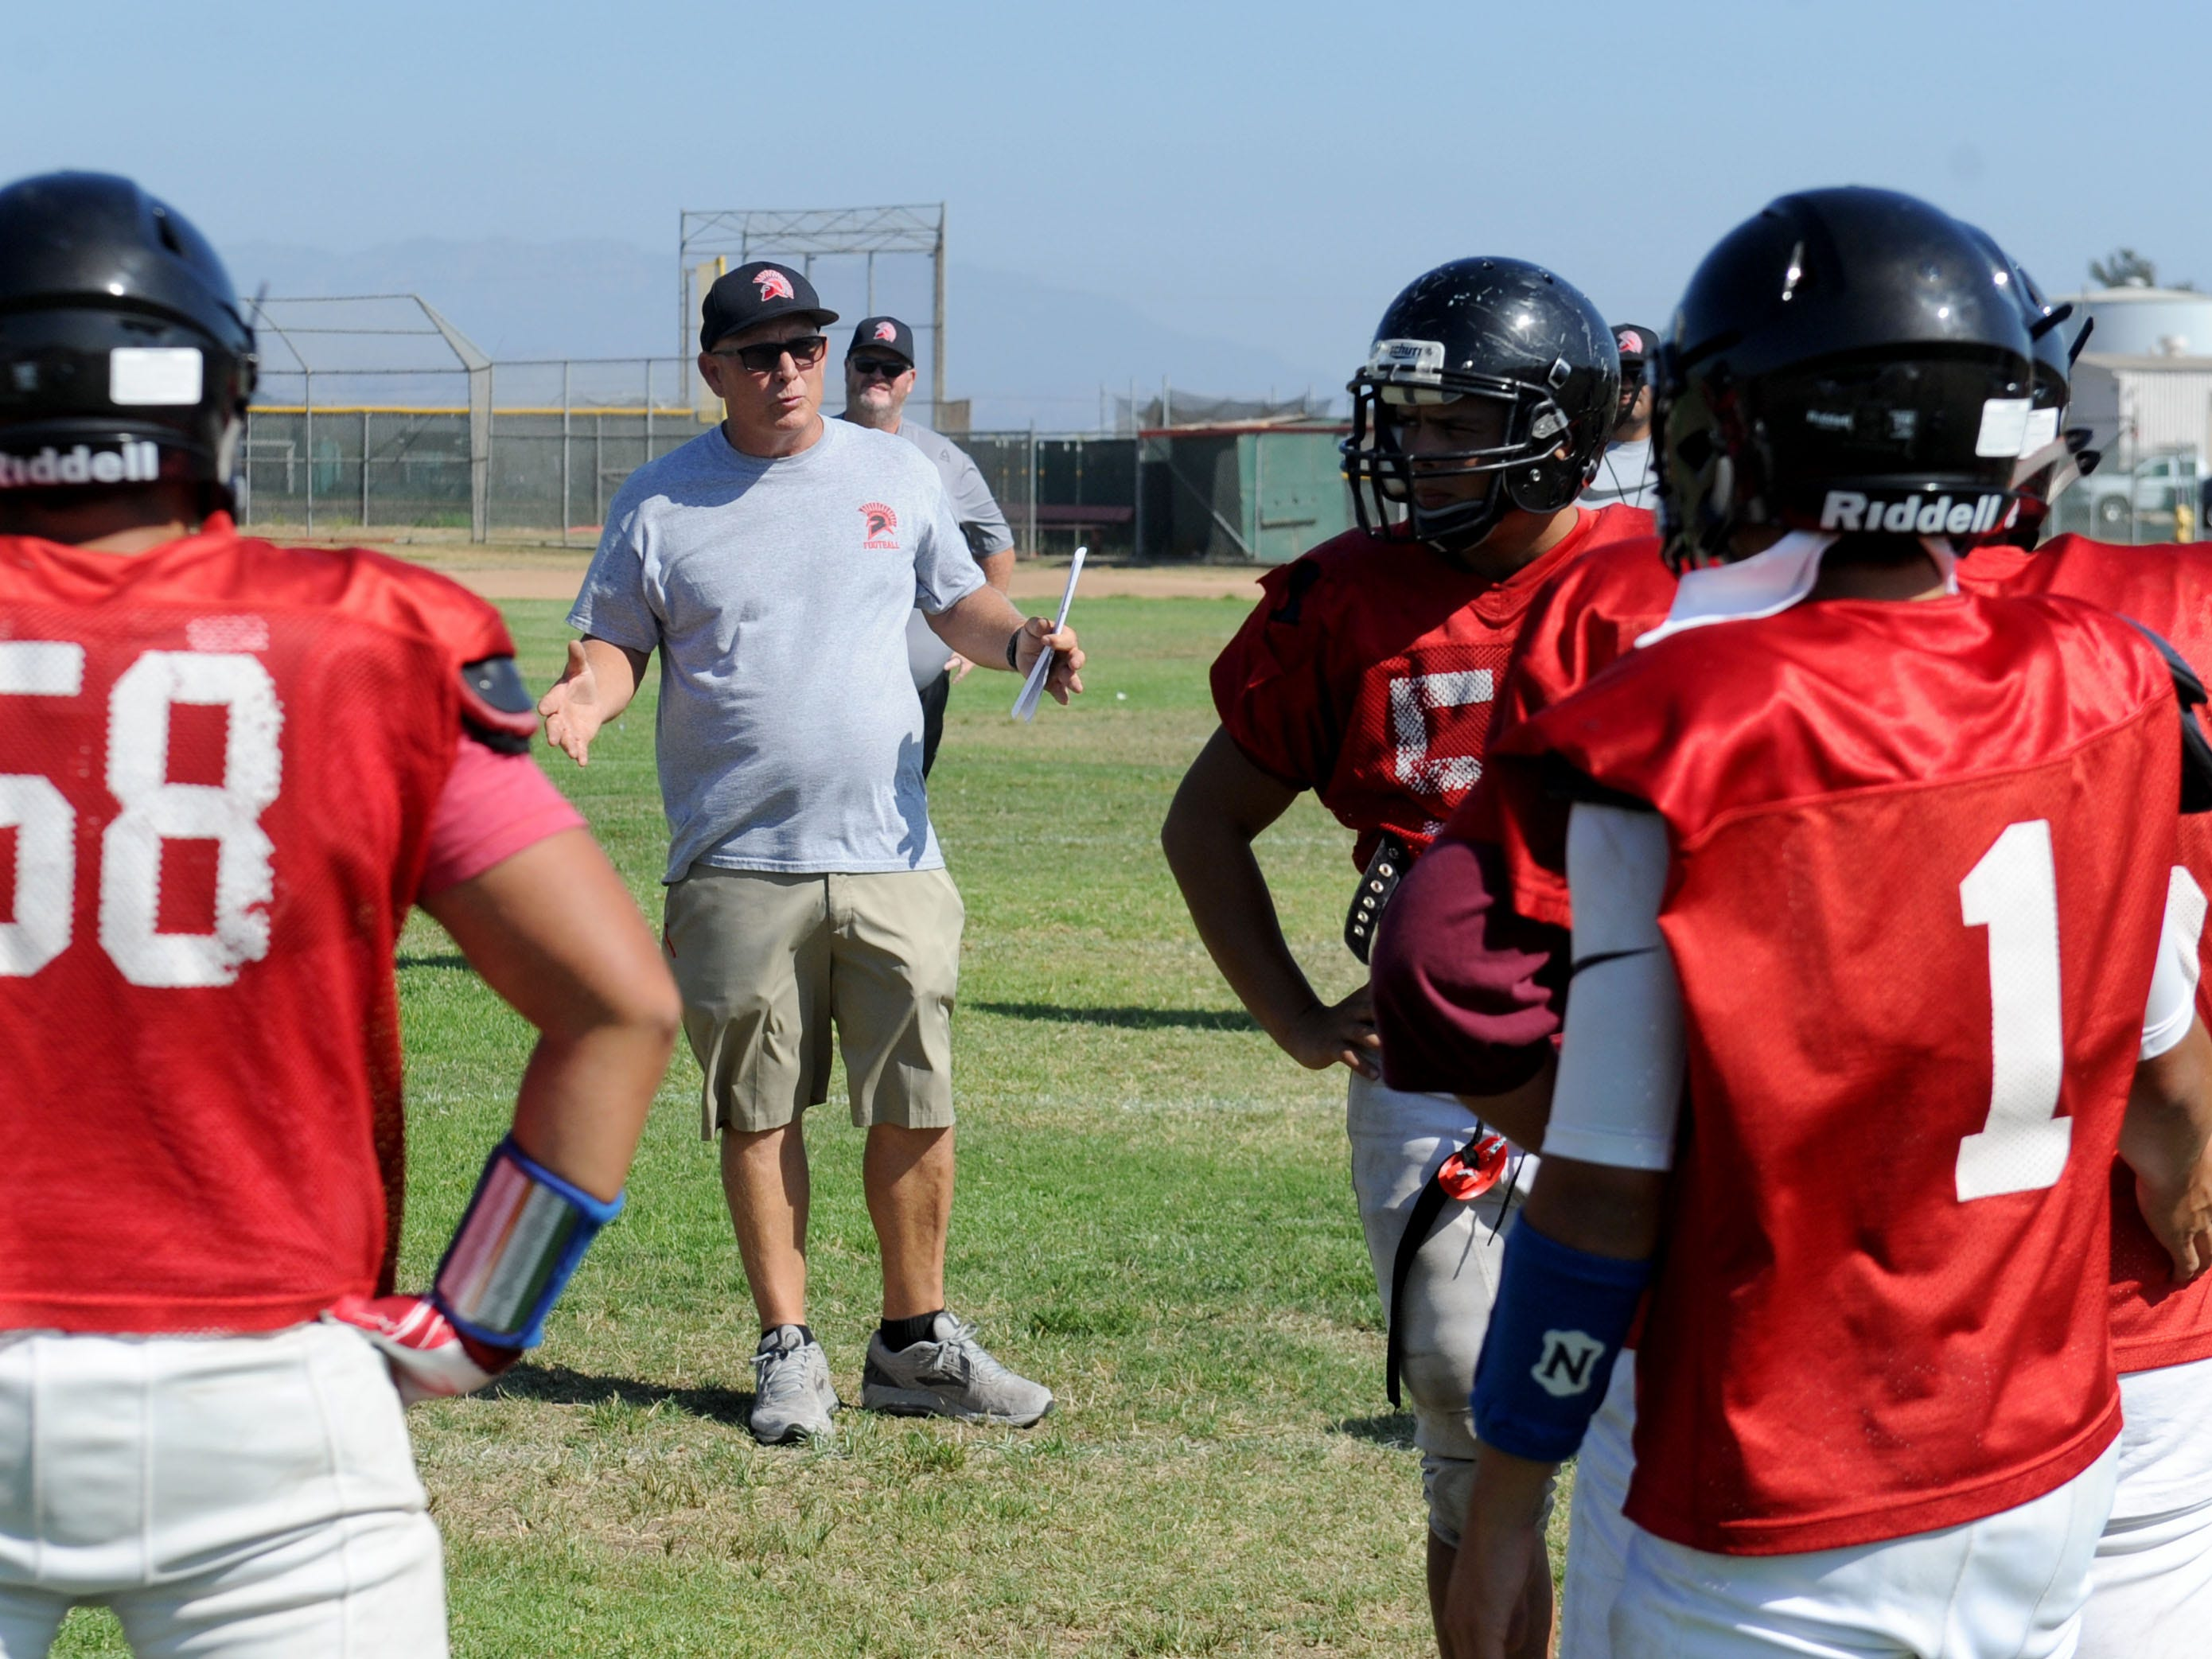 Rio Mesa head coach Jim Bittner gives instructions to his players at practice Wednesday. The Spartans start the 2018 season at Camarillo High on Friday night.